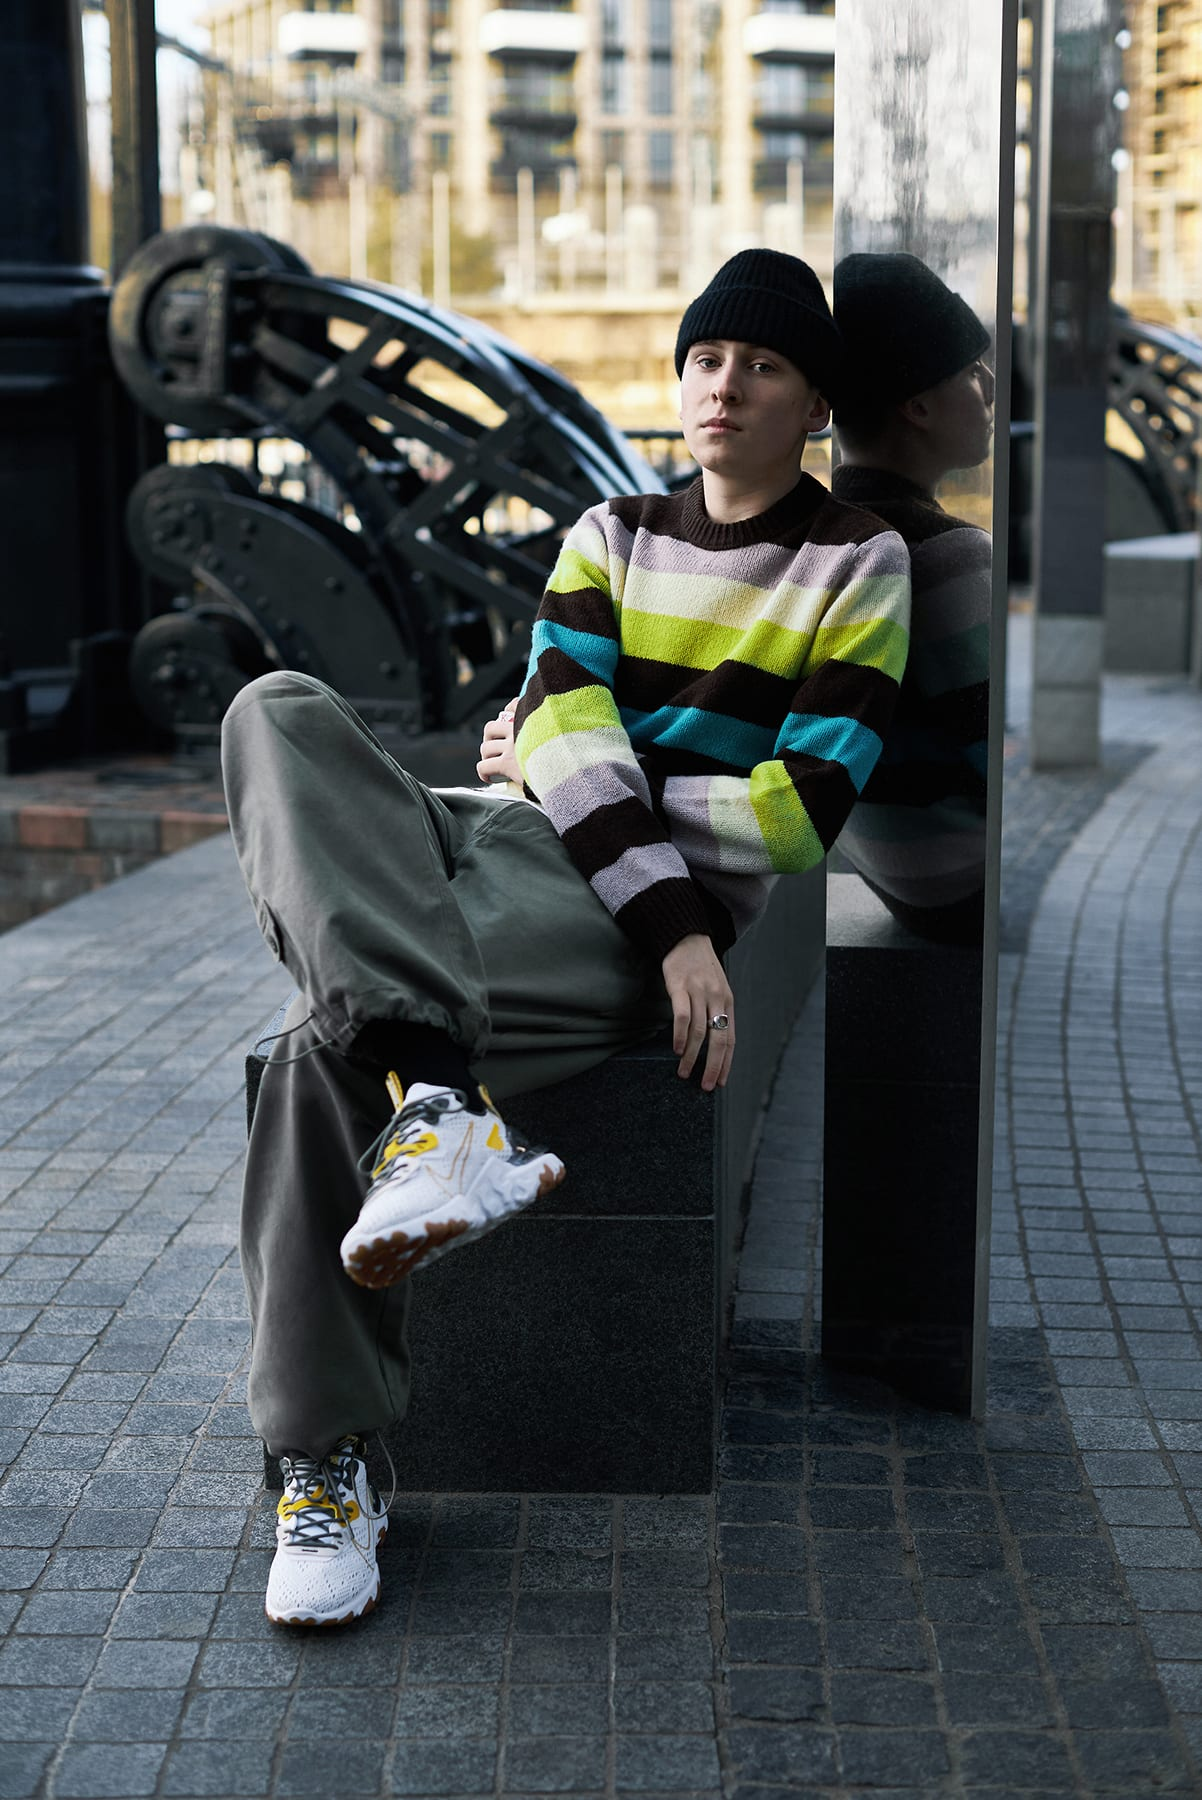 Billy Menezes wearing the Nike React Vision in doing street magic in London